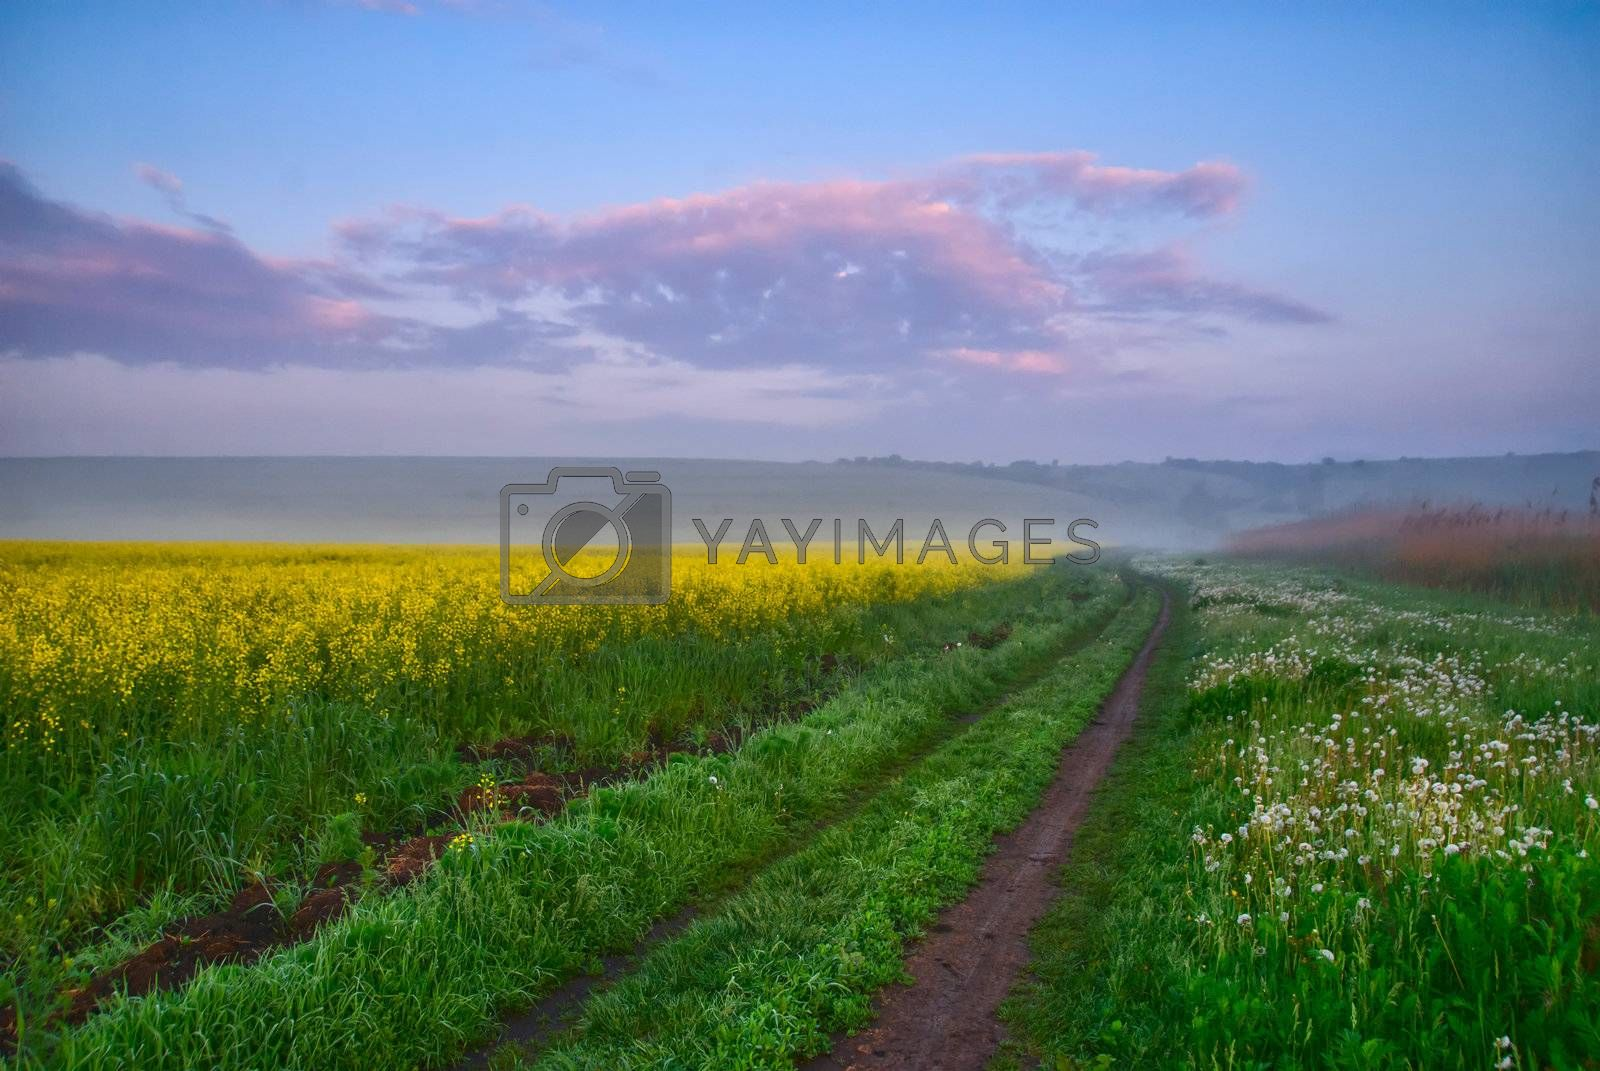 Road along a field of yellow flowers